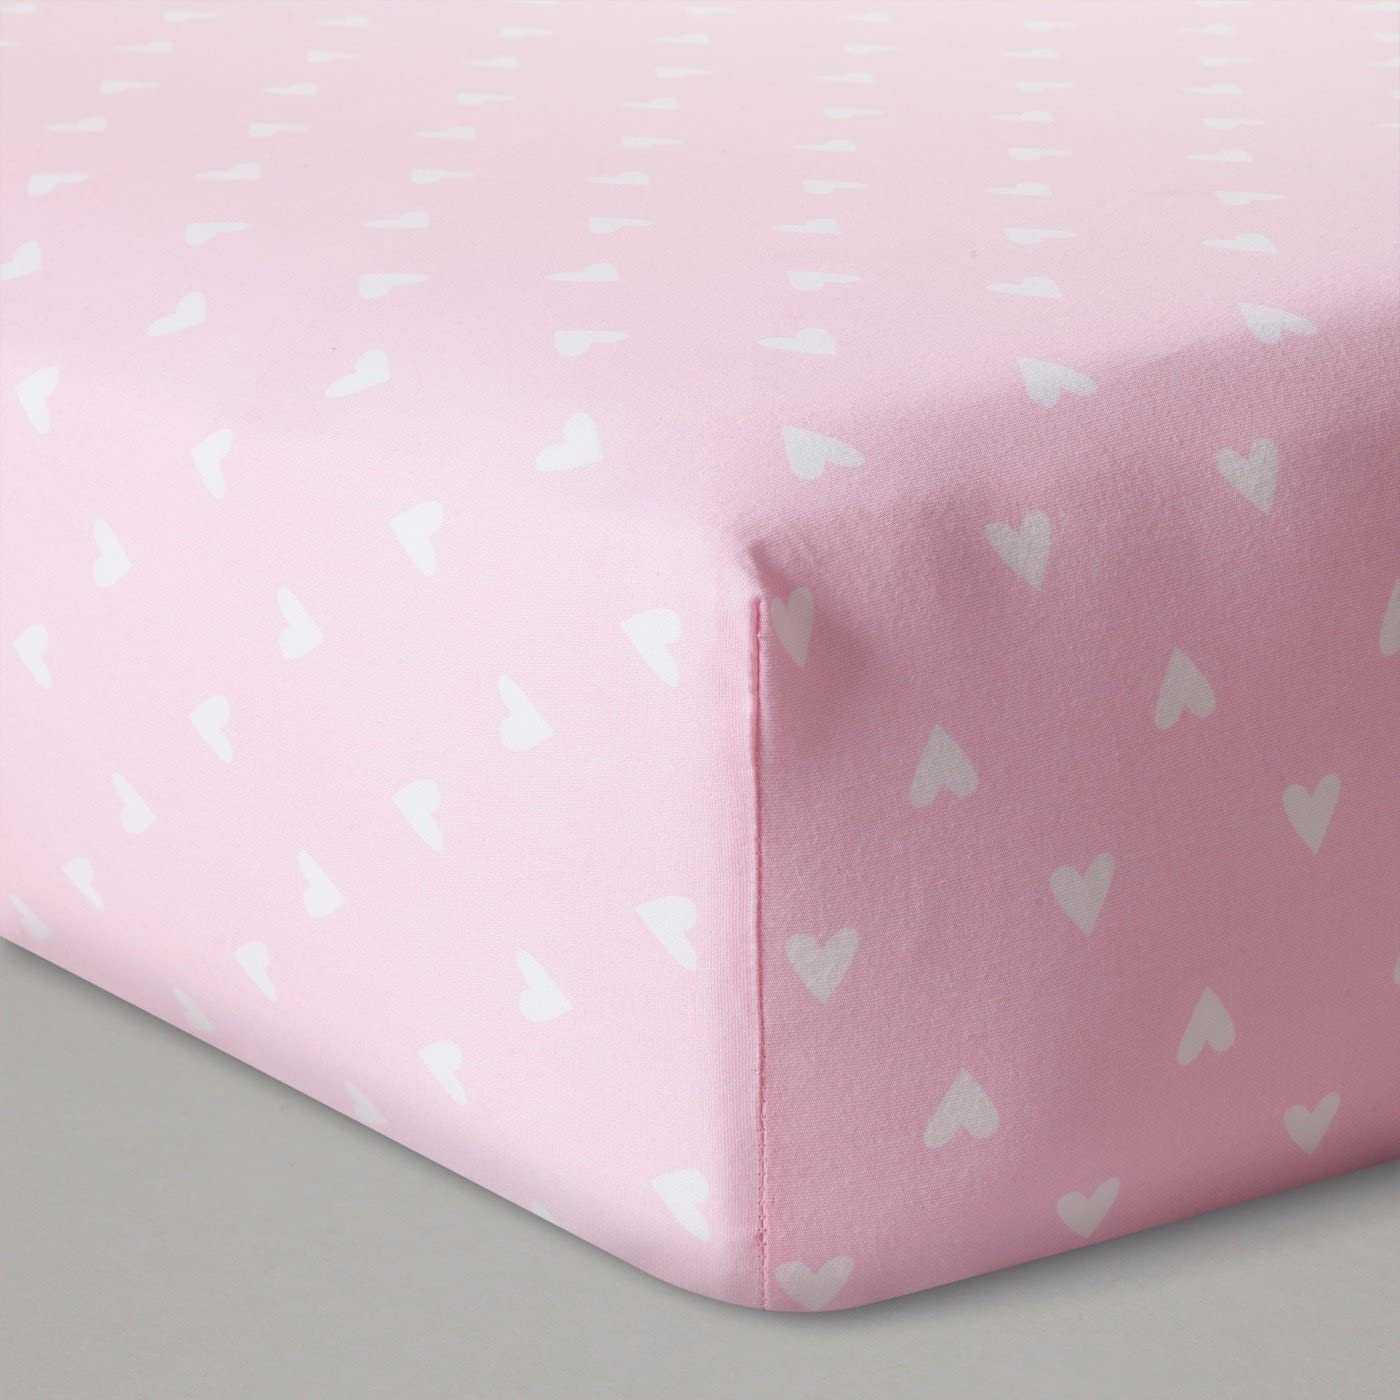 Baby Sheet - Fitted Crib Sheet - Pink Hearts - Soft, breathable cotton and OEKO-TEX certified